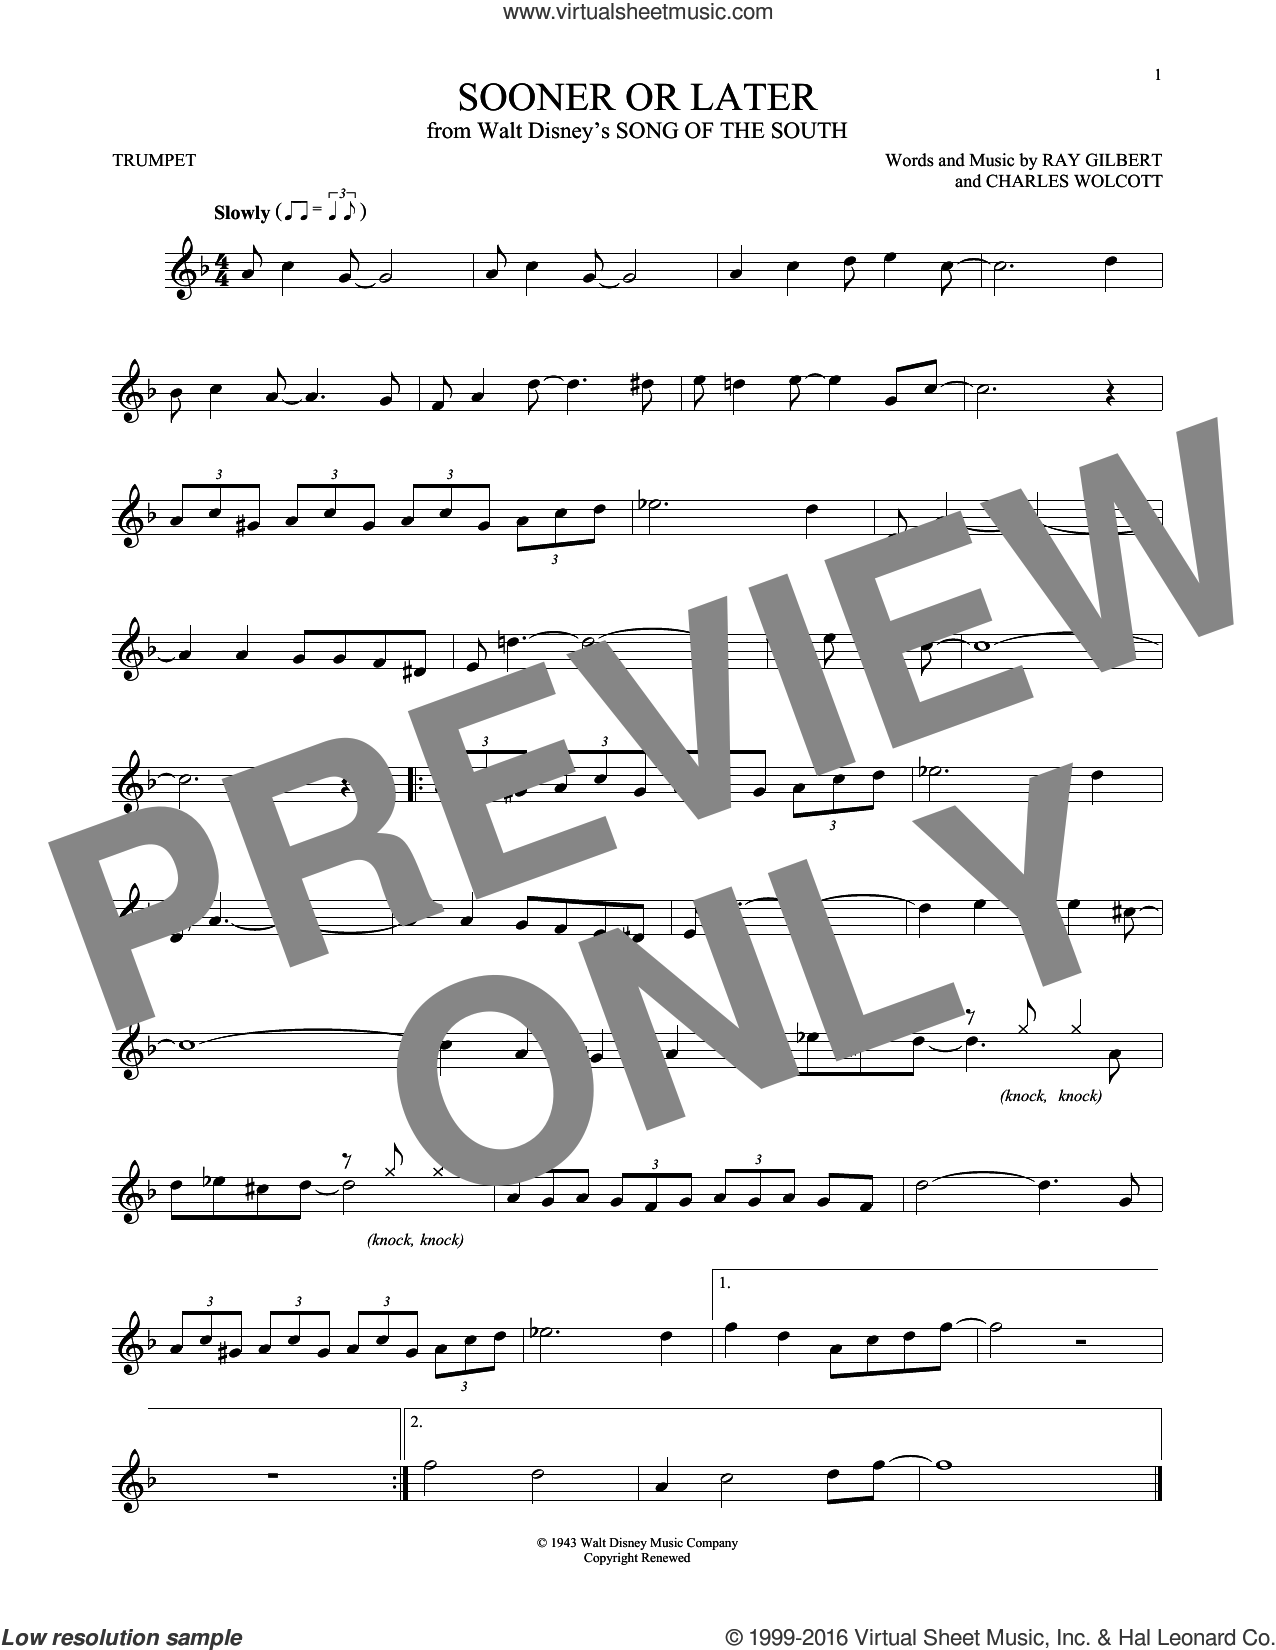 Sooner Or Later sheet music for trumpet solo by Ray Gilbert, Charles Wolcott and Ray Gilbert & Charles Wolcott, intermediate skill level